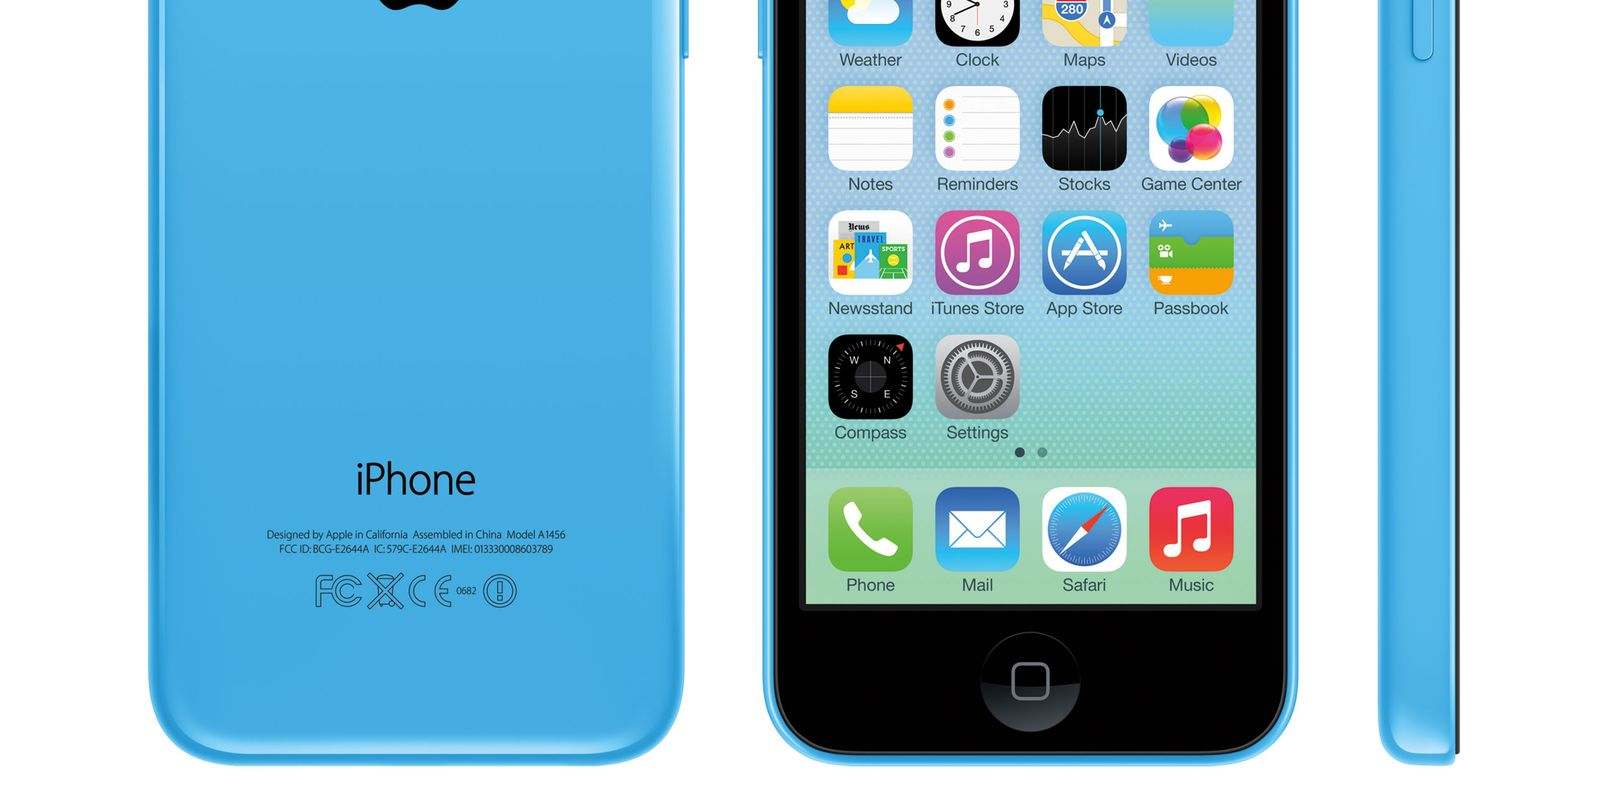 Good Wallpapers For Iphone 5c: Smartphone Review